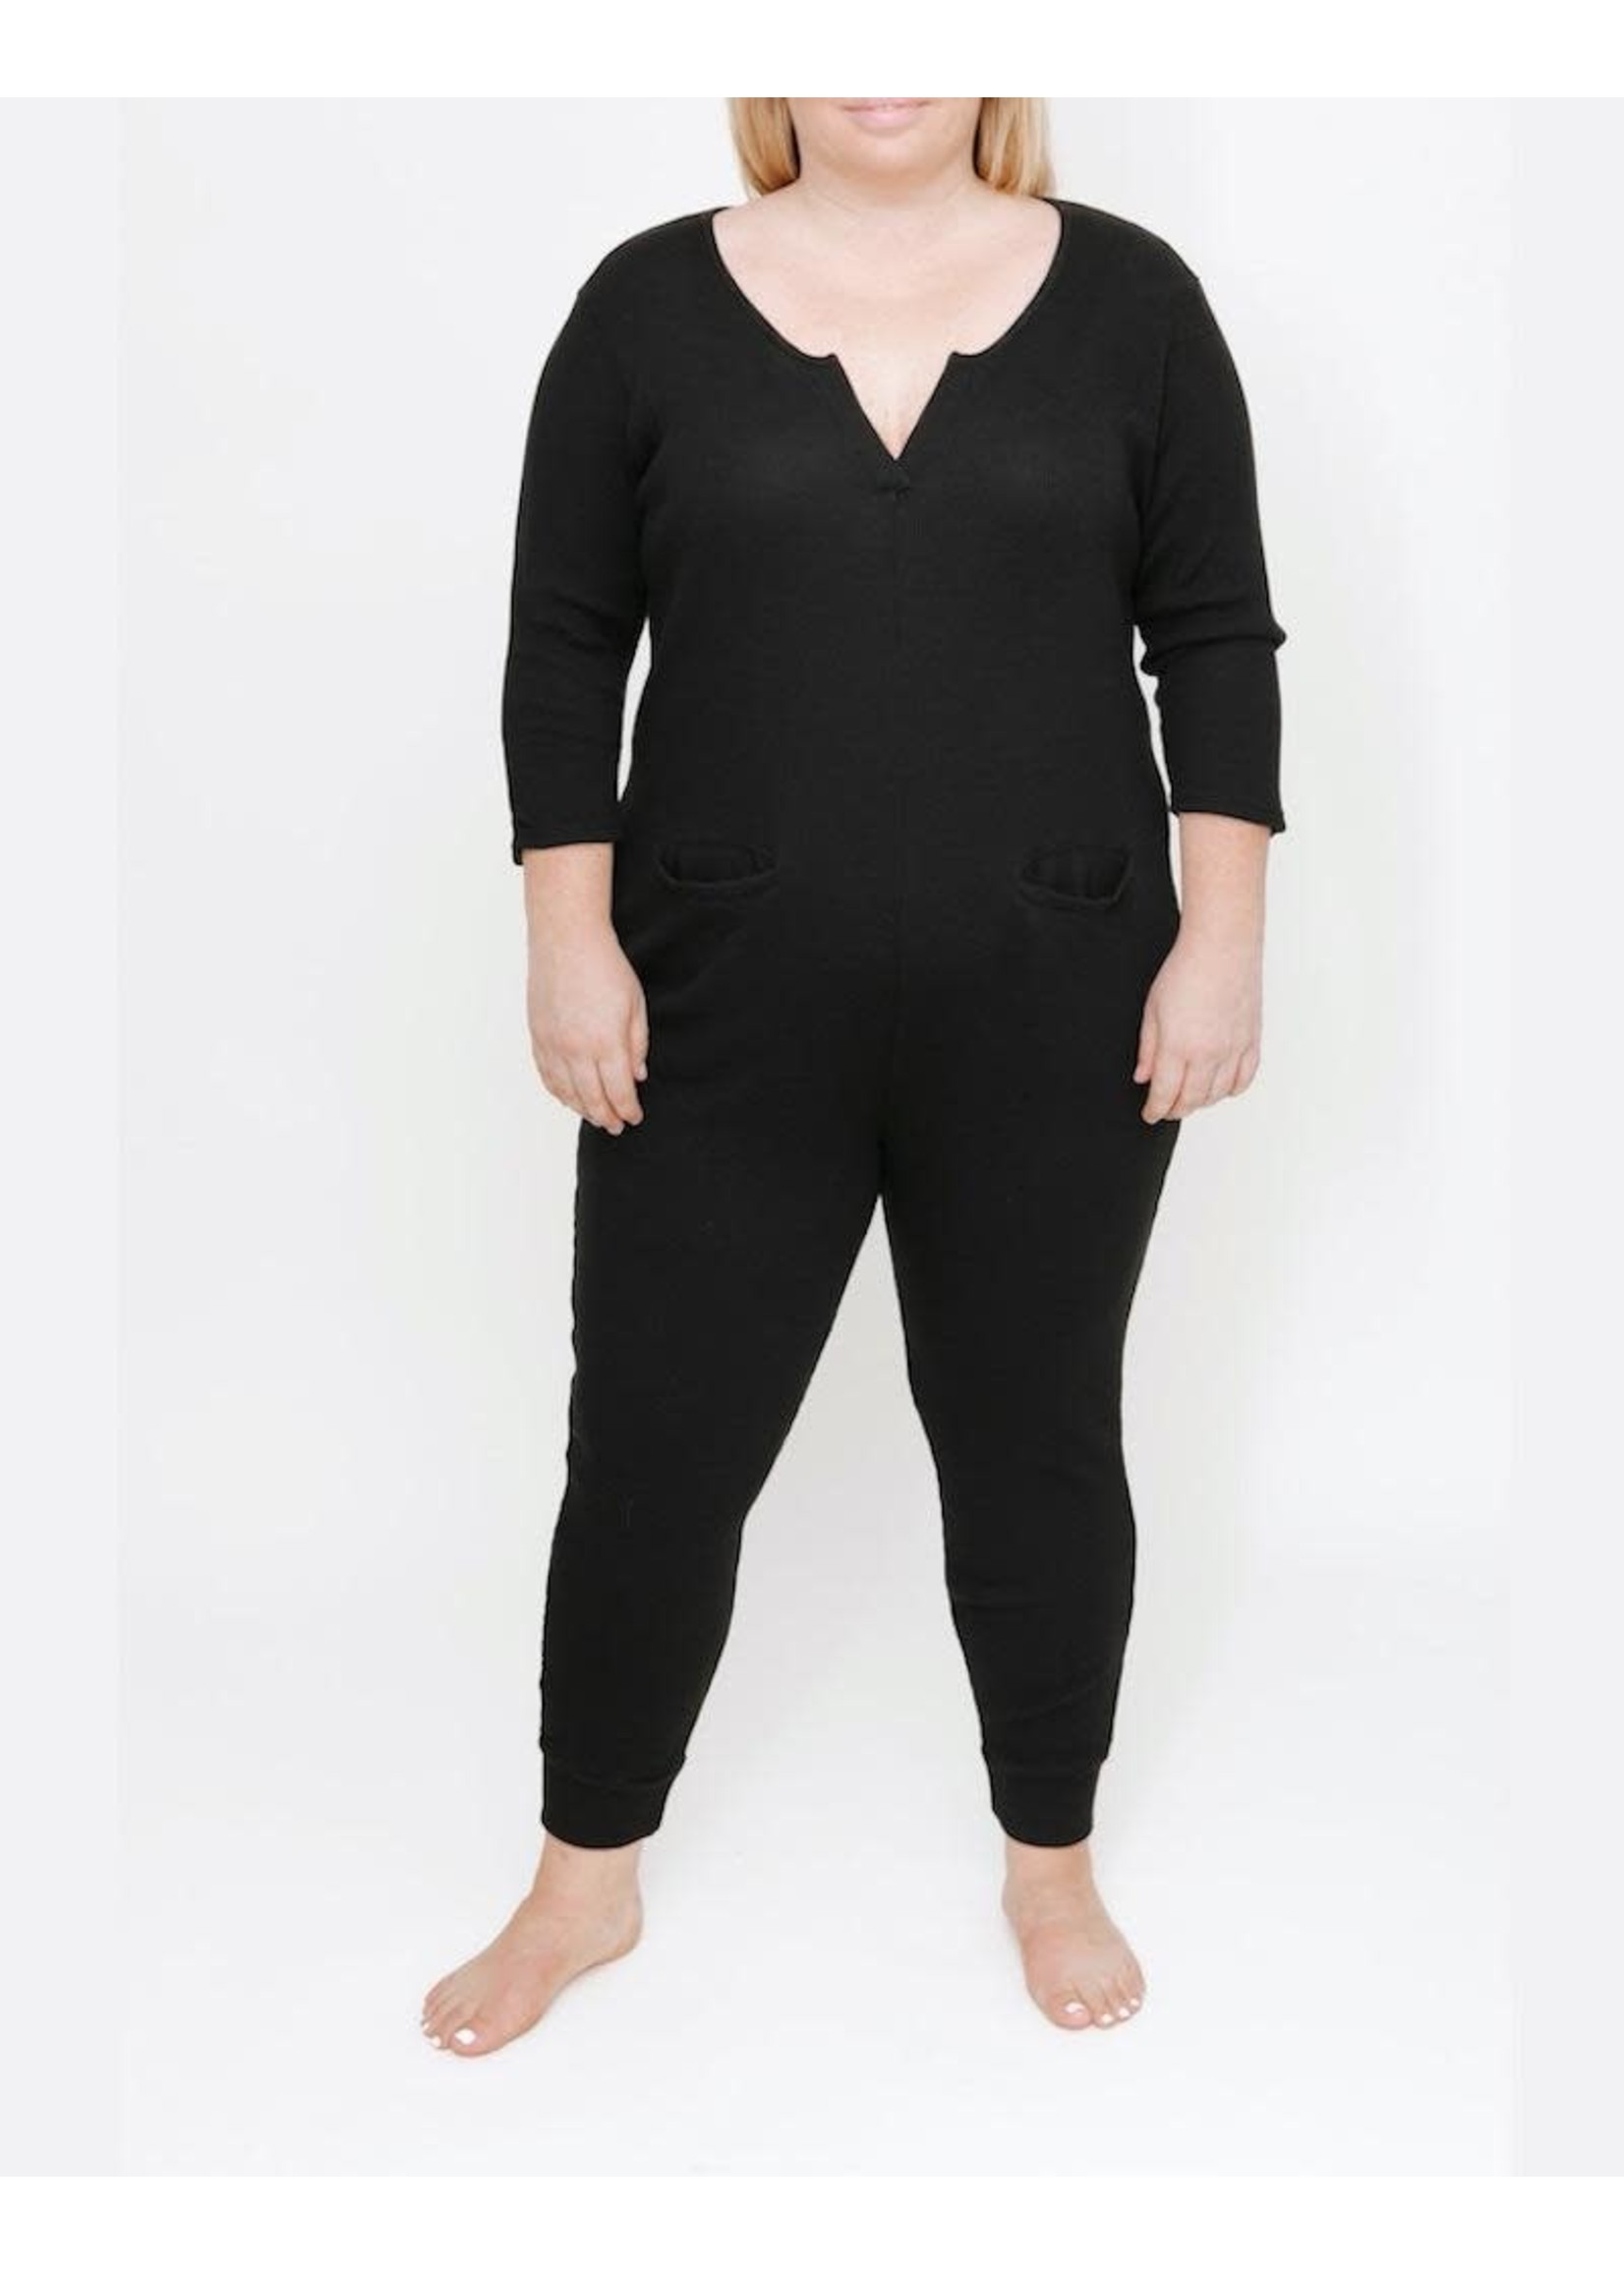 Smash + Tess Smash + Tess, The S+T Coffee Time Waffle Romper in Midnight Black